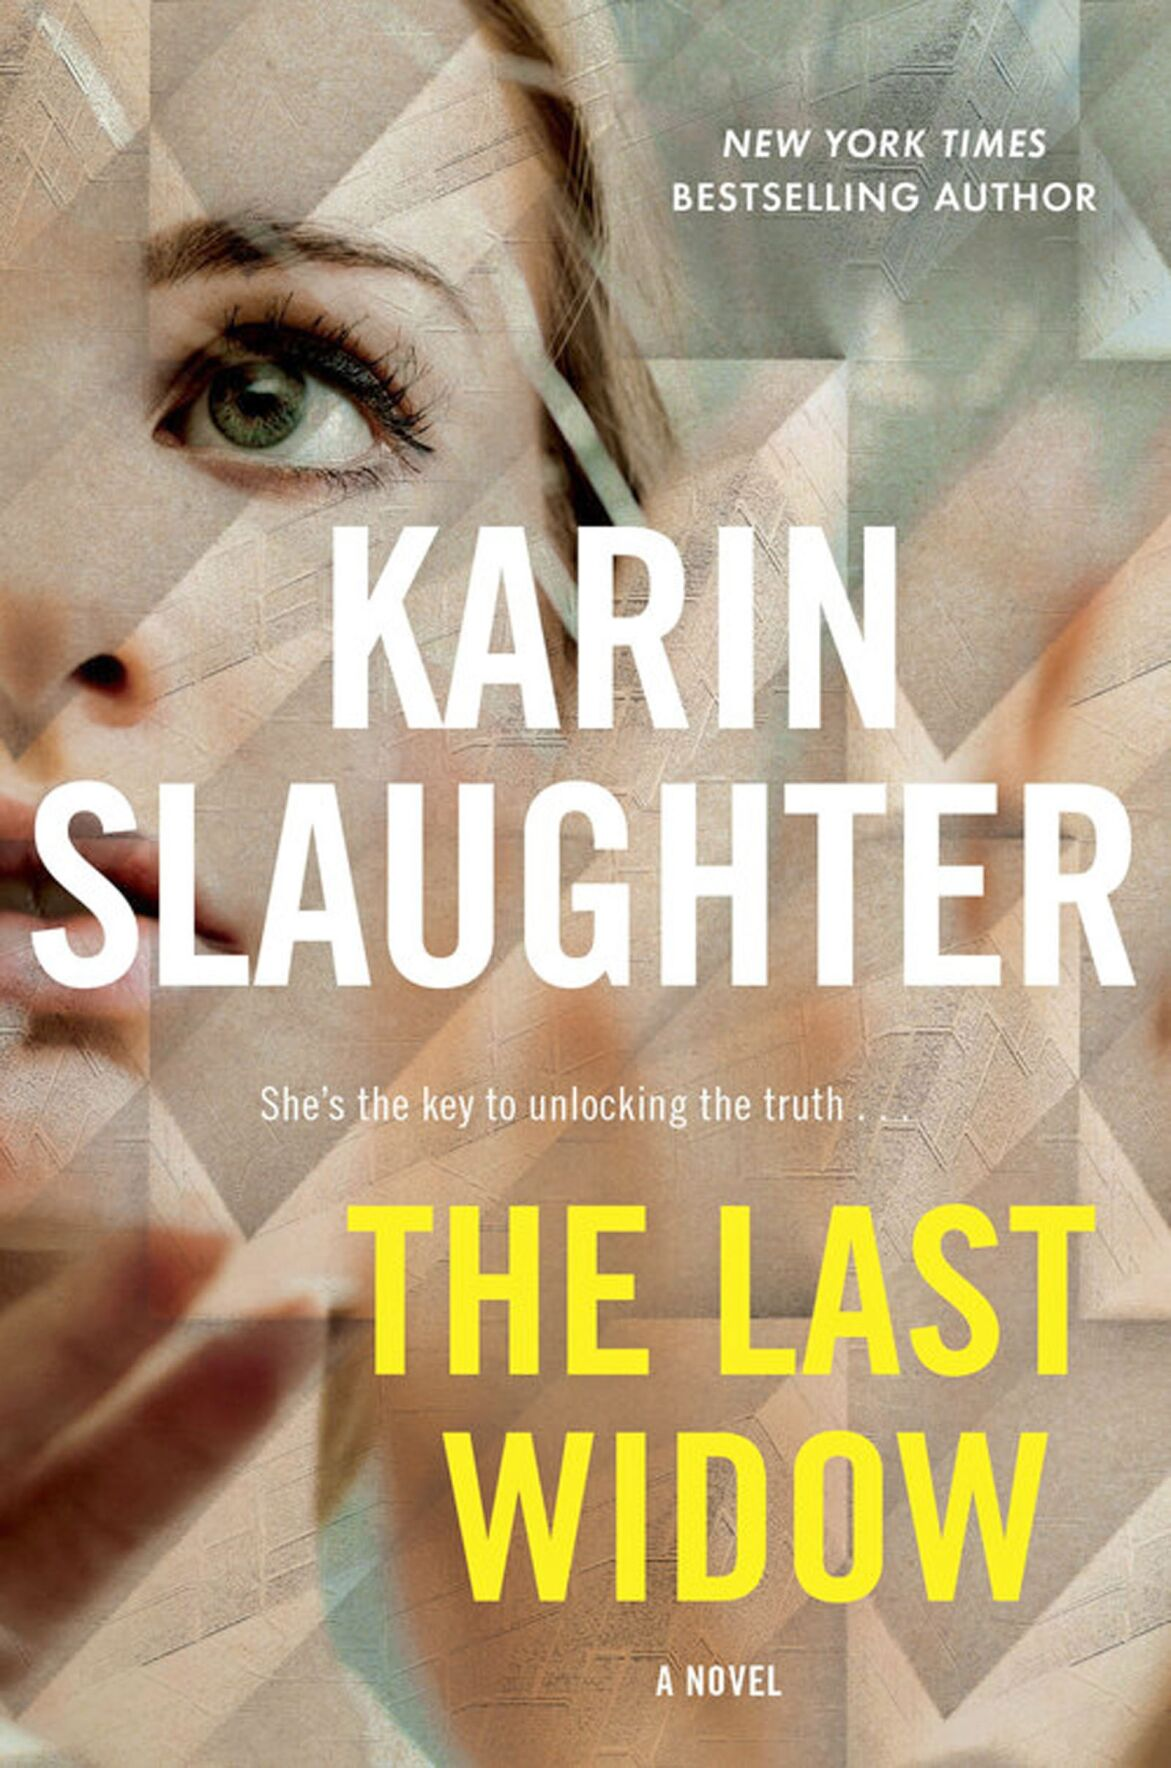 021721_MNS_COVID-19_adjusts_002 The Last Widow by Karin Slaughter